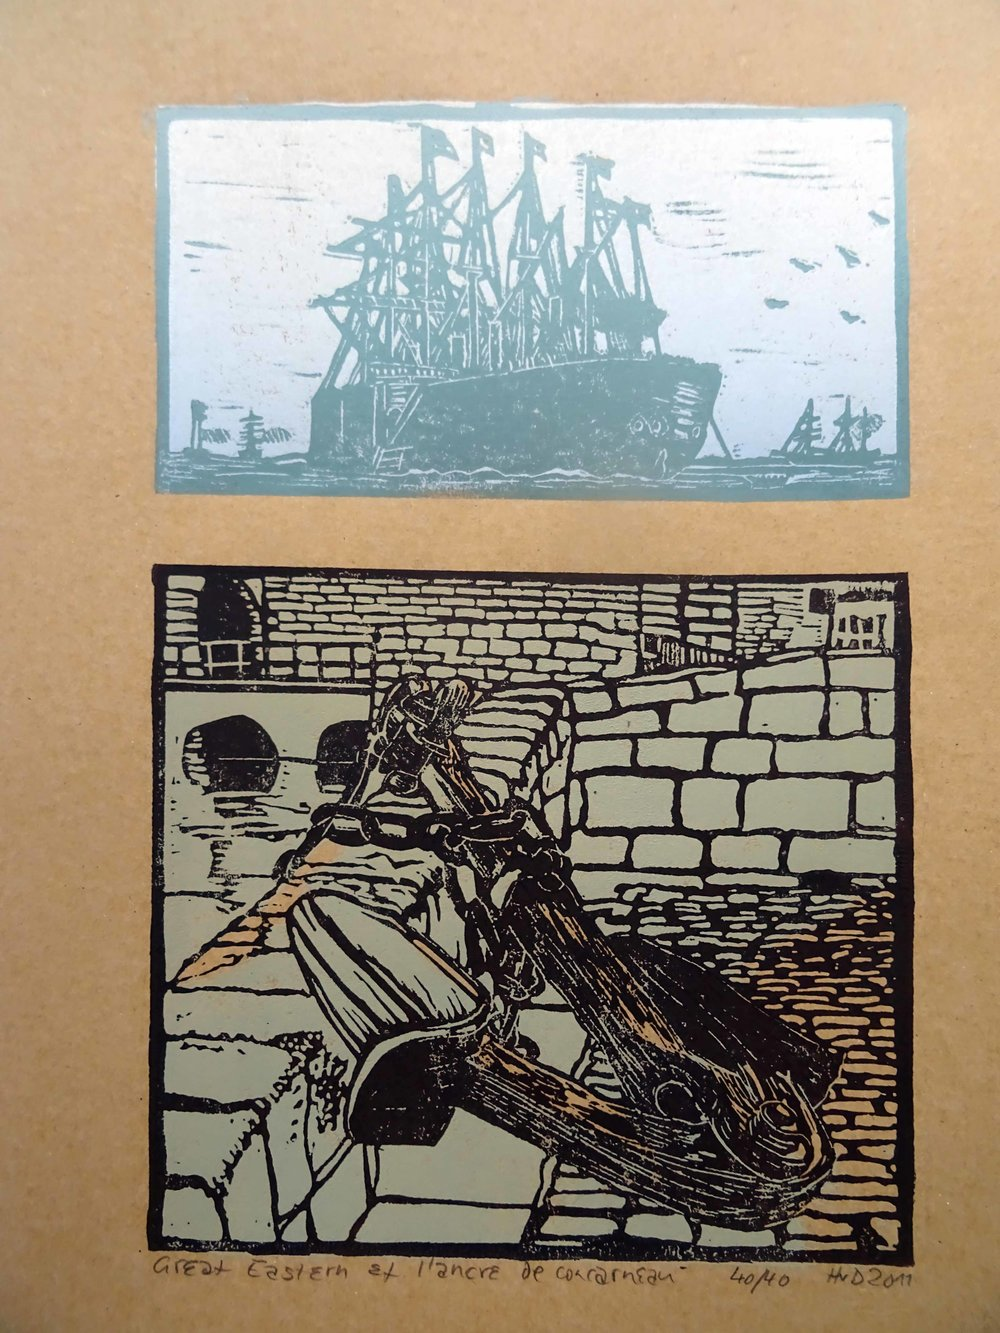 87 - Concarneau Ancre, Great Eastern, 2-plate lino 40x30cm, 100 €